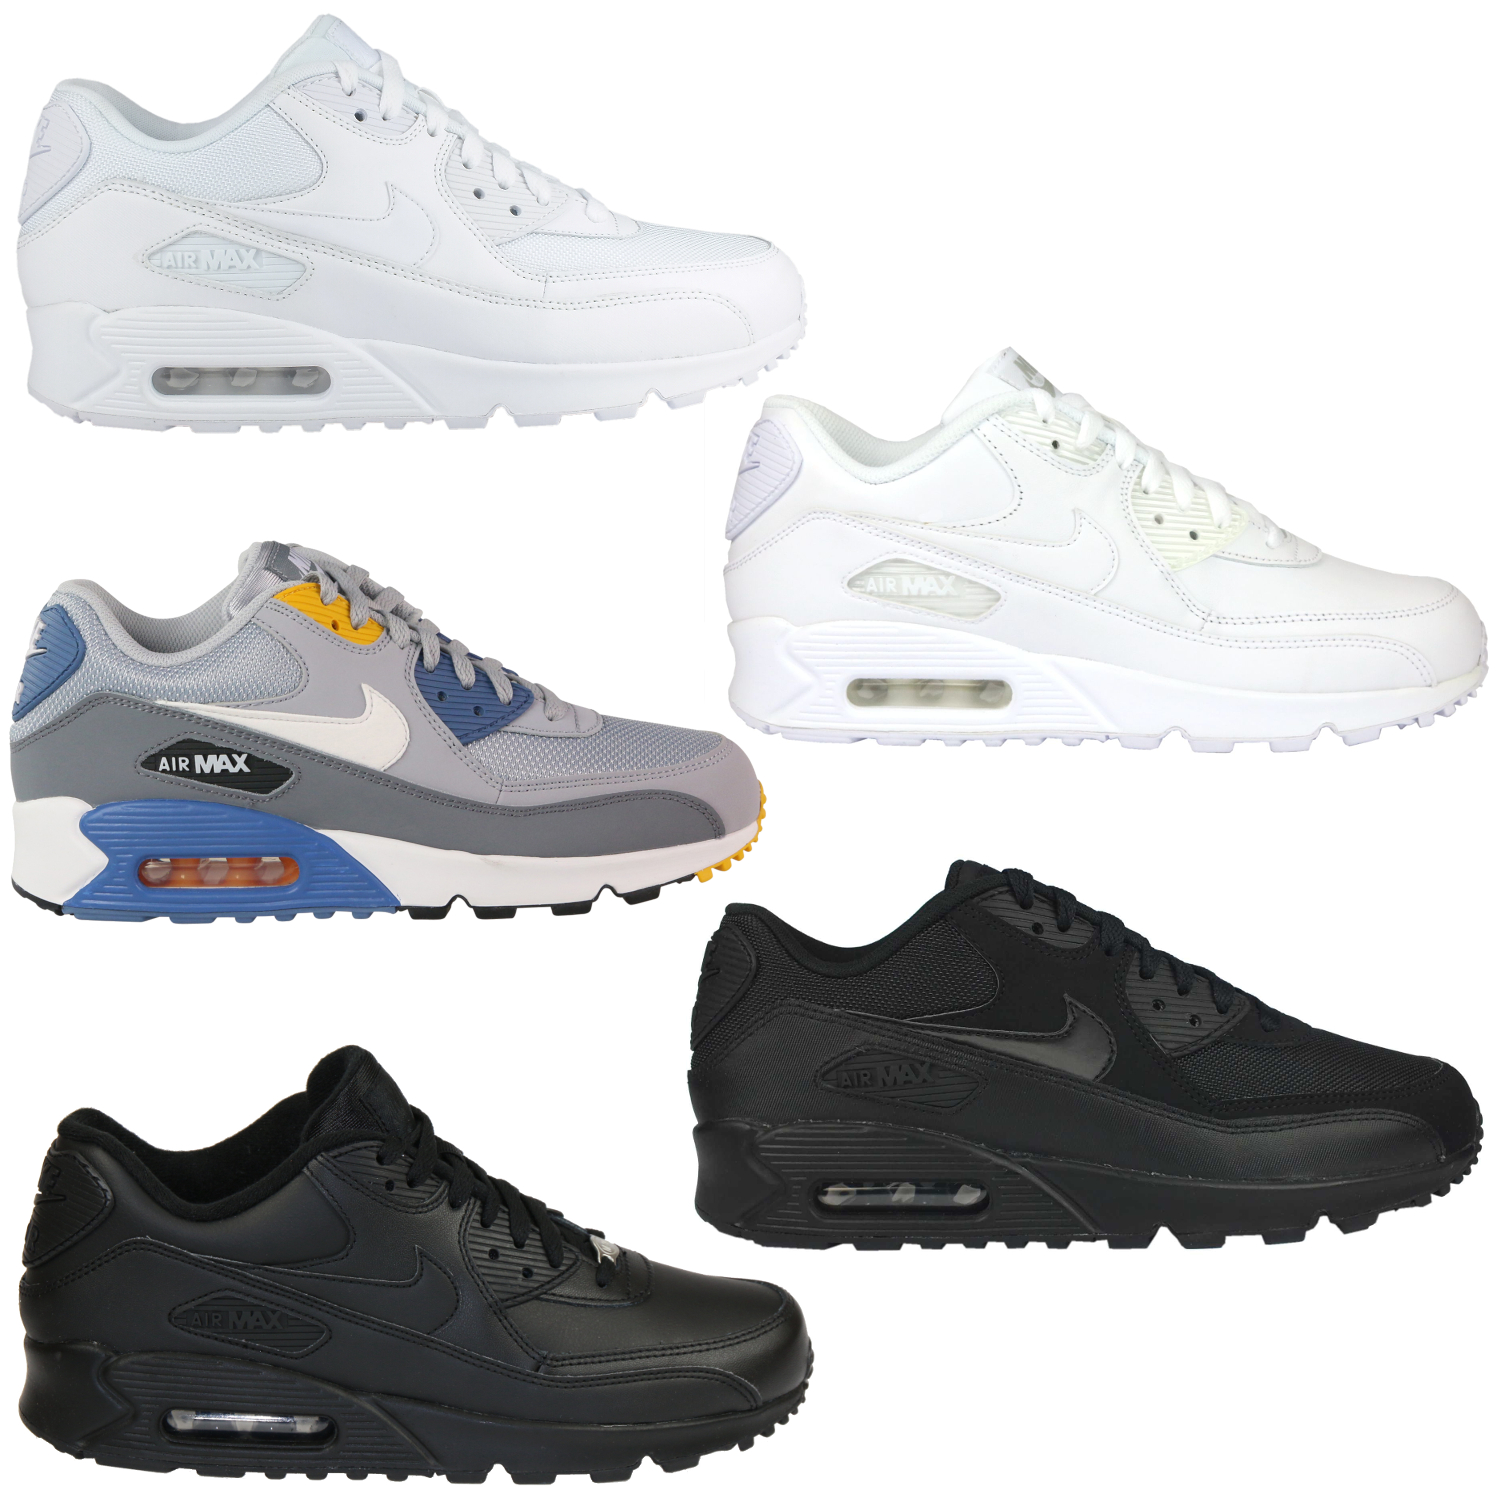 scsrw Nike Air Max 90 Essential Shoes Sneakers Trainers Leather Men\'s | eBay